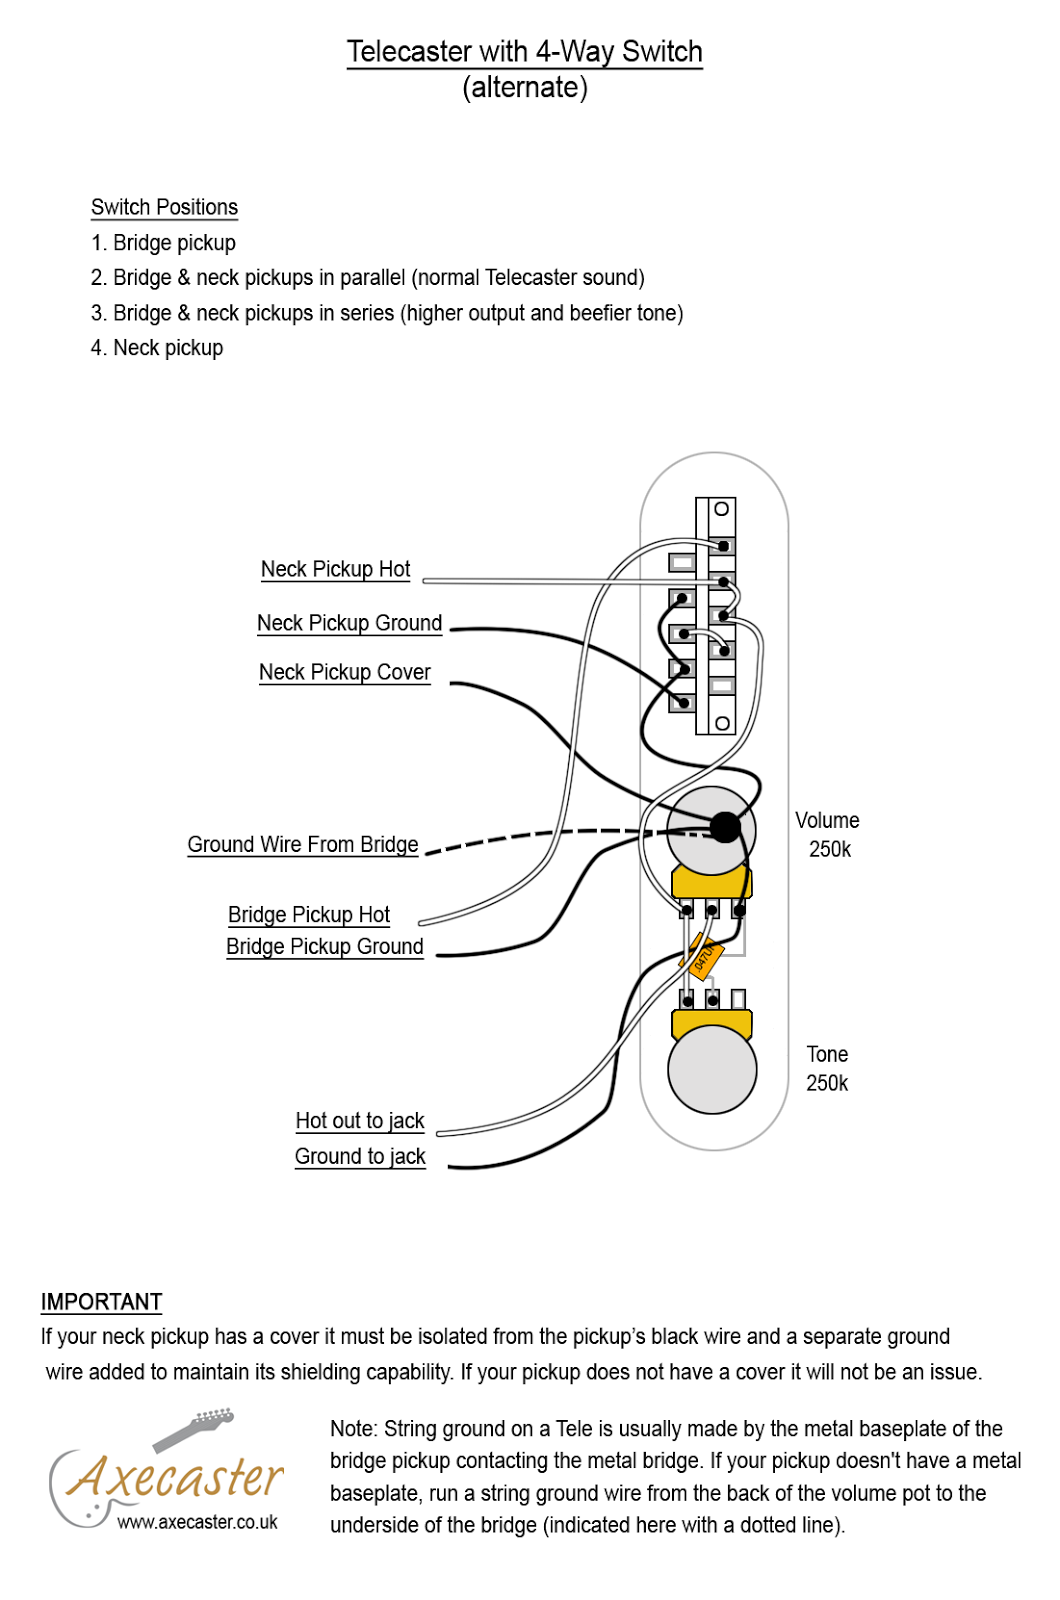 4way+b-bnparallel-bnseries-n  Position Lever Switch Telecaster Wiring Diagram on 3 position light switch diagram, 2 pole switch diagram, 3 position ignition switch diagram, throttle position sensor wiring diagram, dpdt on-off-on switch diagram, light switch outlet diagram, crankshaft position sensor wiring diagram, 3 pole switch diagram, jeep cj headlight switch diagram, 3 position switch operation, 3 position wall switch, 2 position selector switch diagram, 3 position toggle switch, 6 pin toggle switch diagram, 6 prong toggle switch diagram, 3 position switch parts, 3-way toggle switch diagram, ignition starter switch diagram, on off on toggle switch diagram,